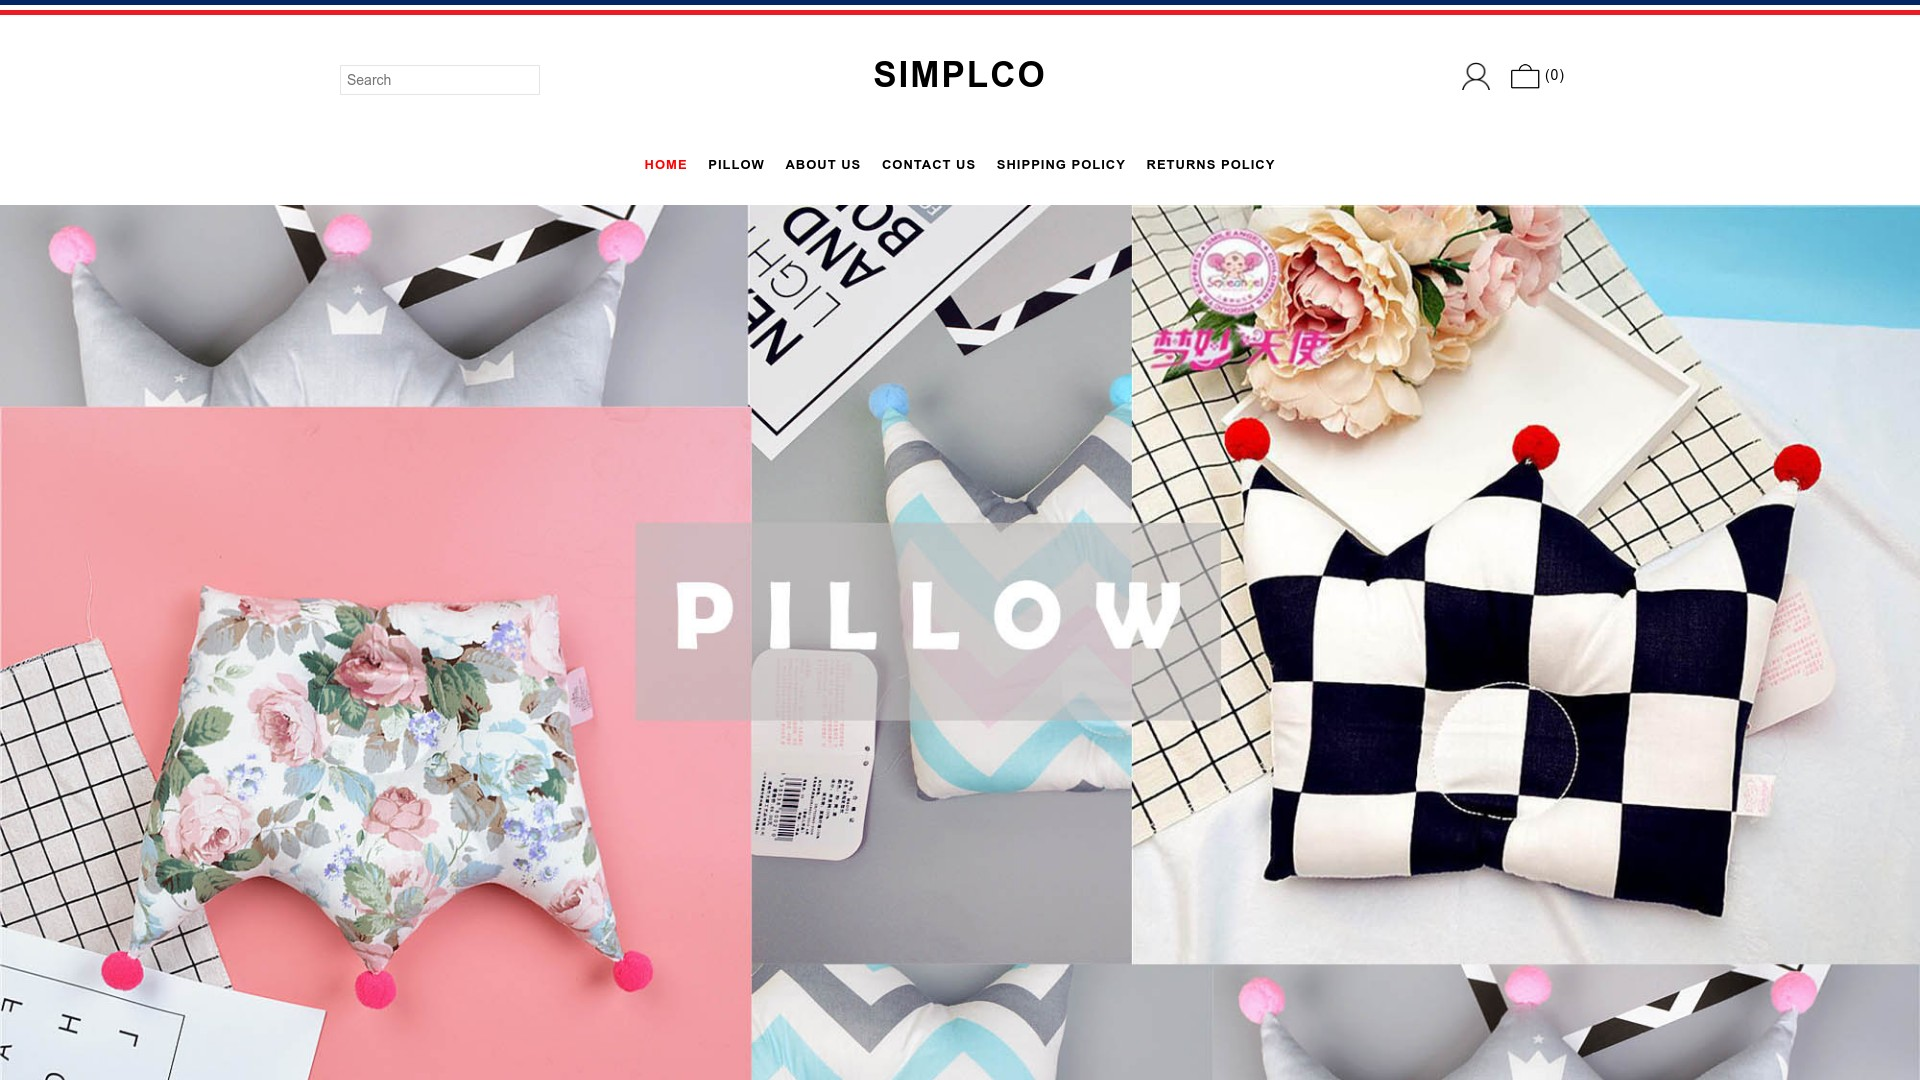 Is Simplco a Scam? Review of the Online Store